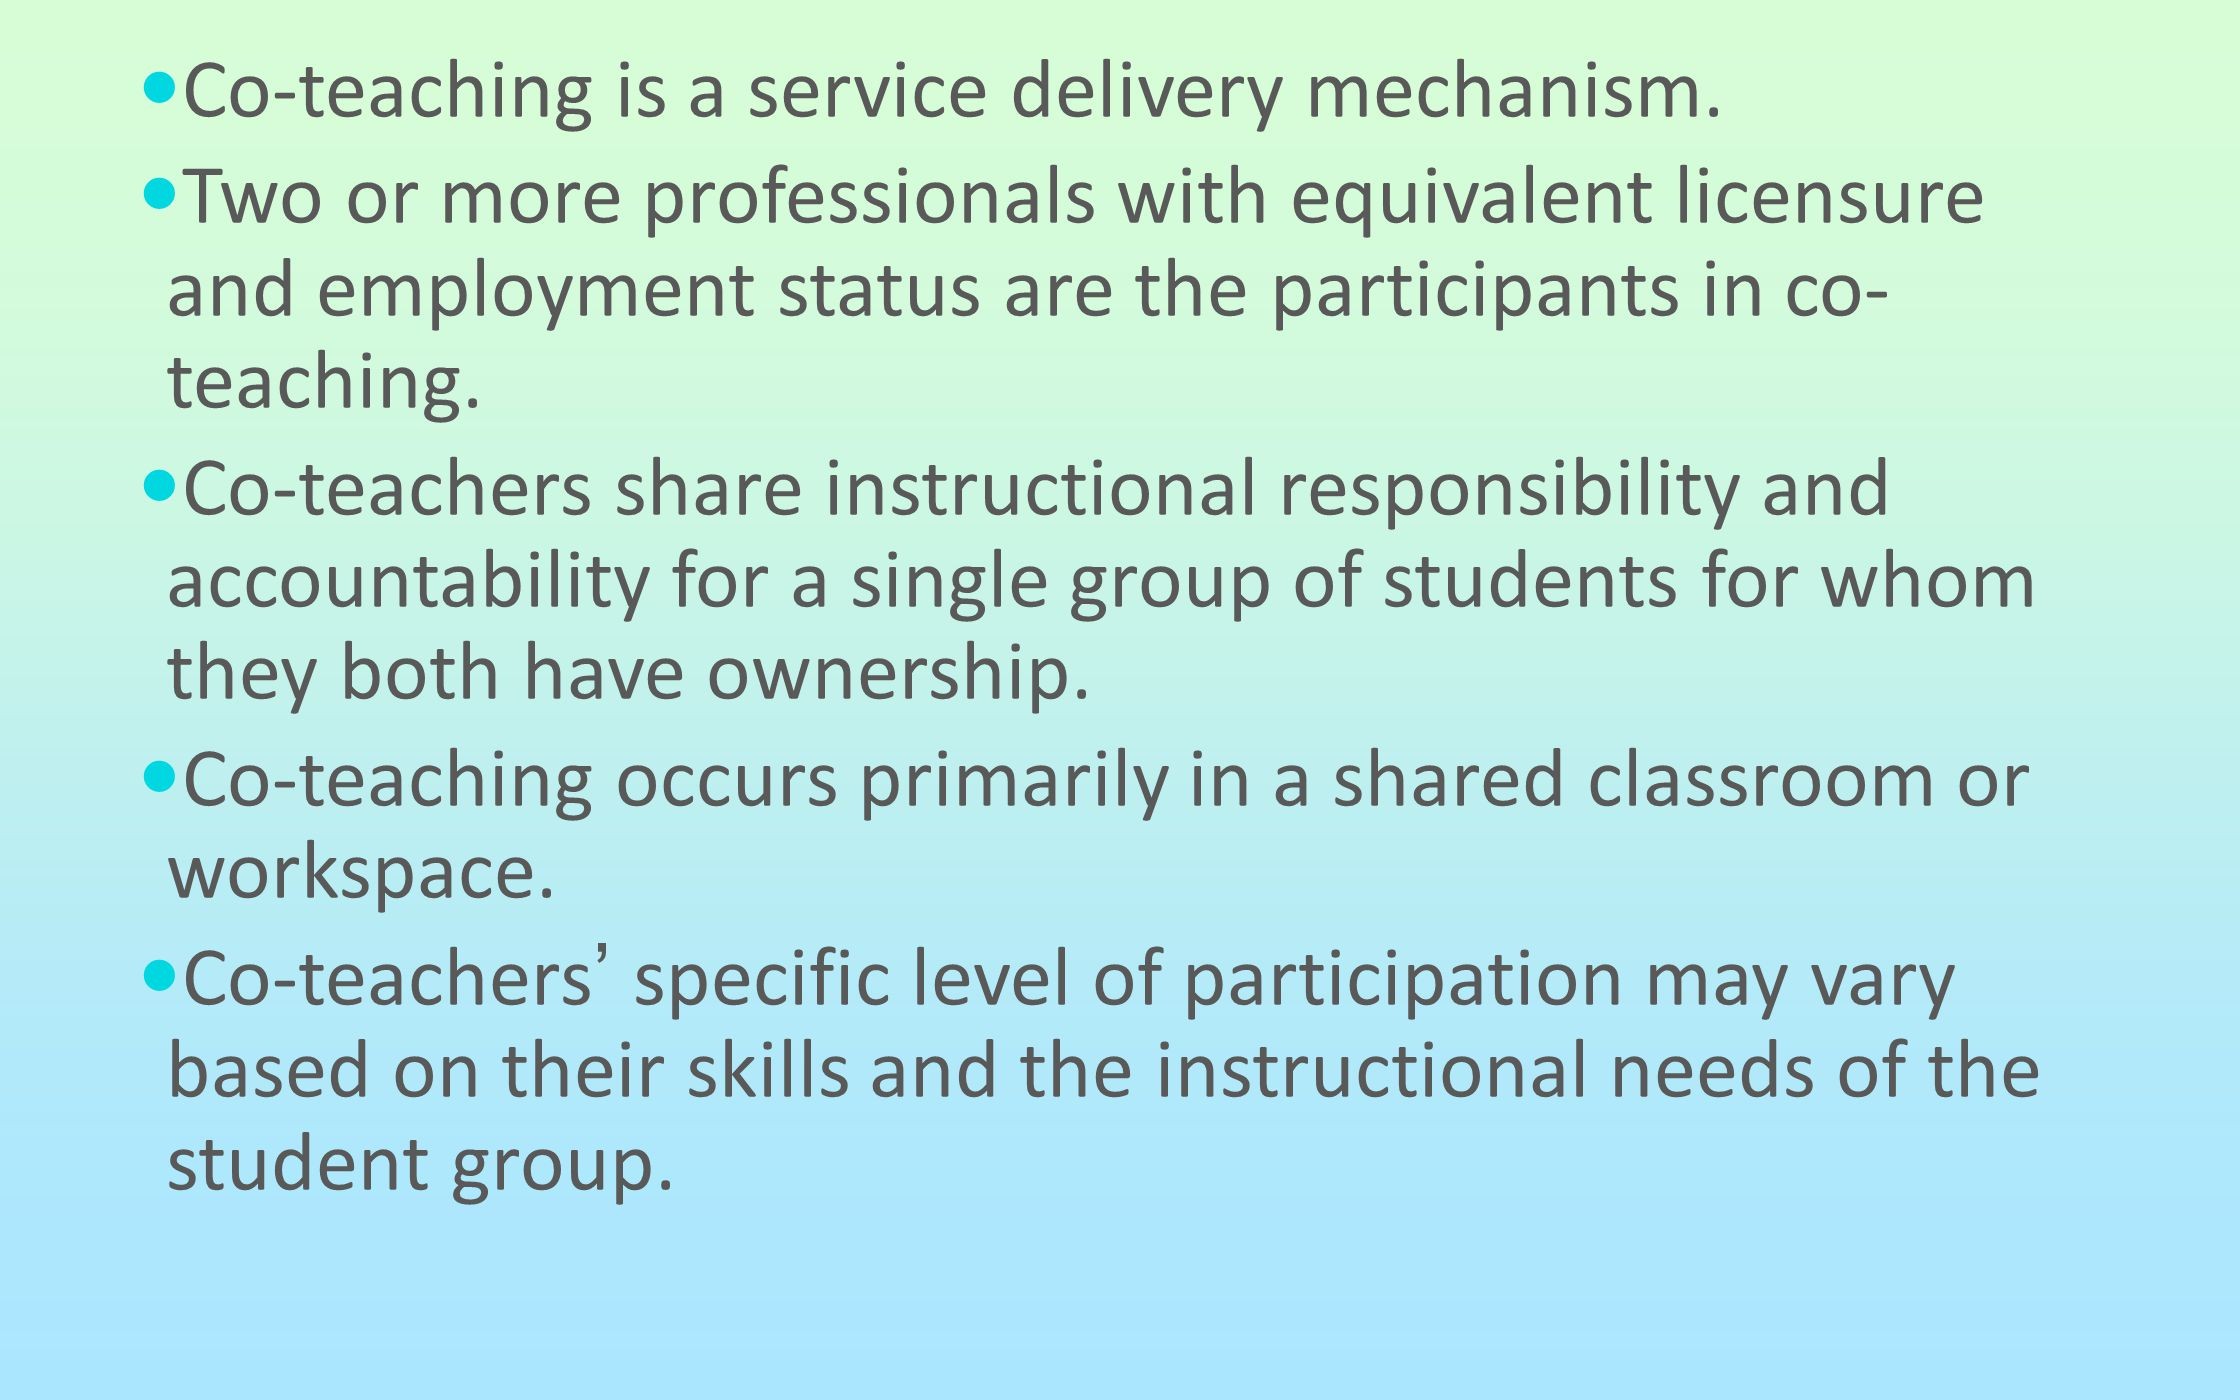 Co-teaching is a service delivery mechanism.